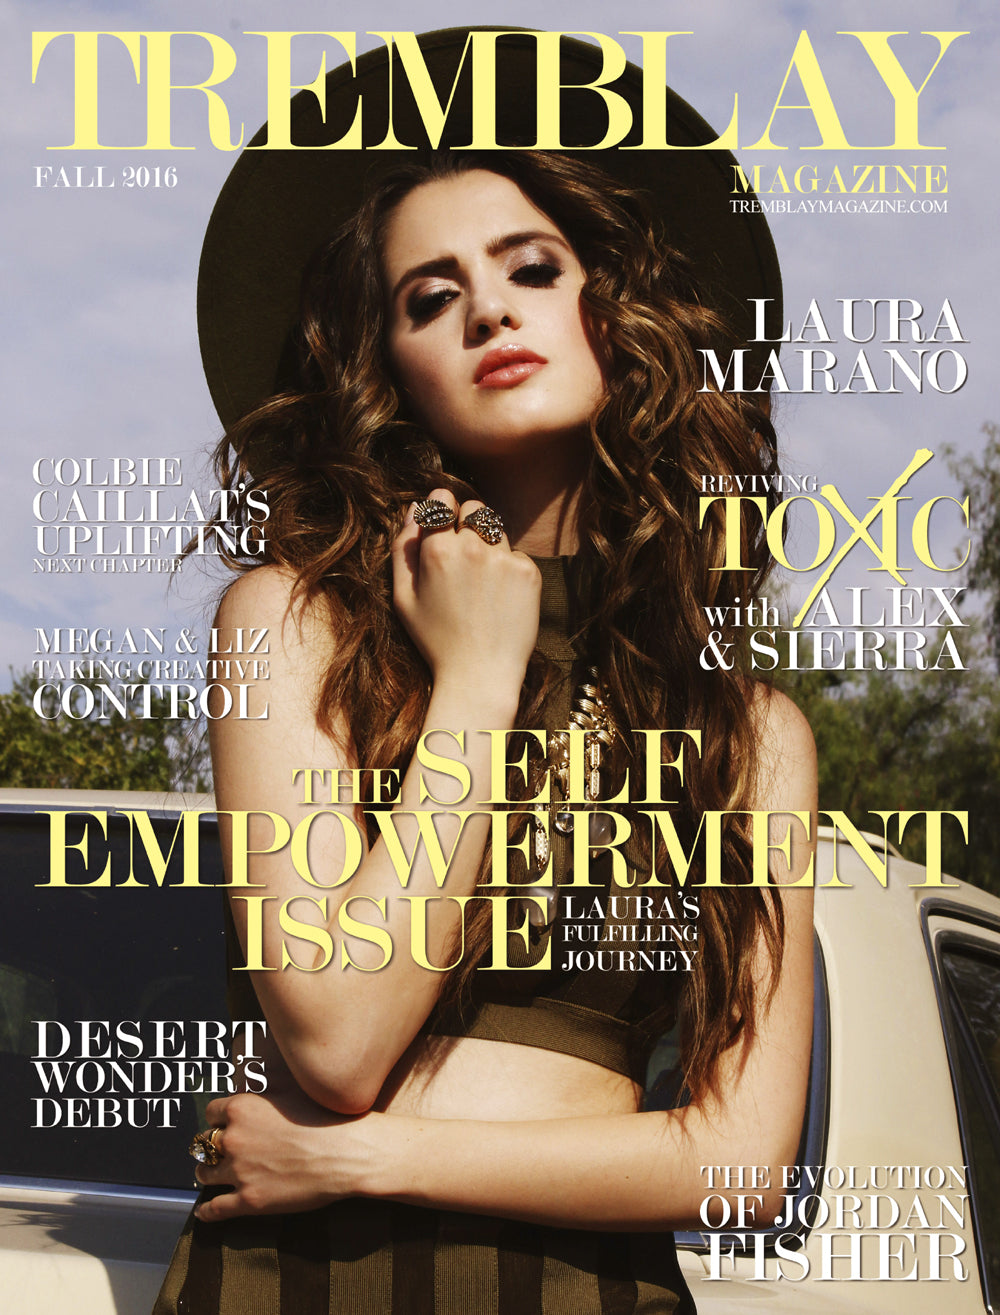 Laura Marano in Tremblay magazine wearing Jenny Dayco rings and necklace 1